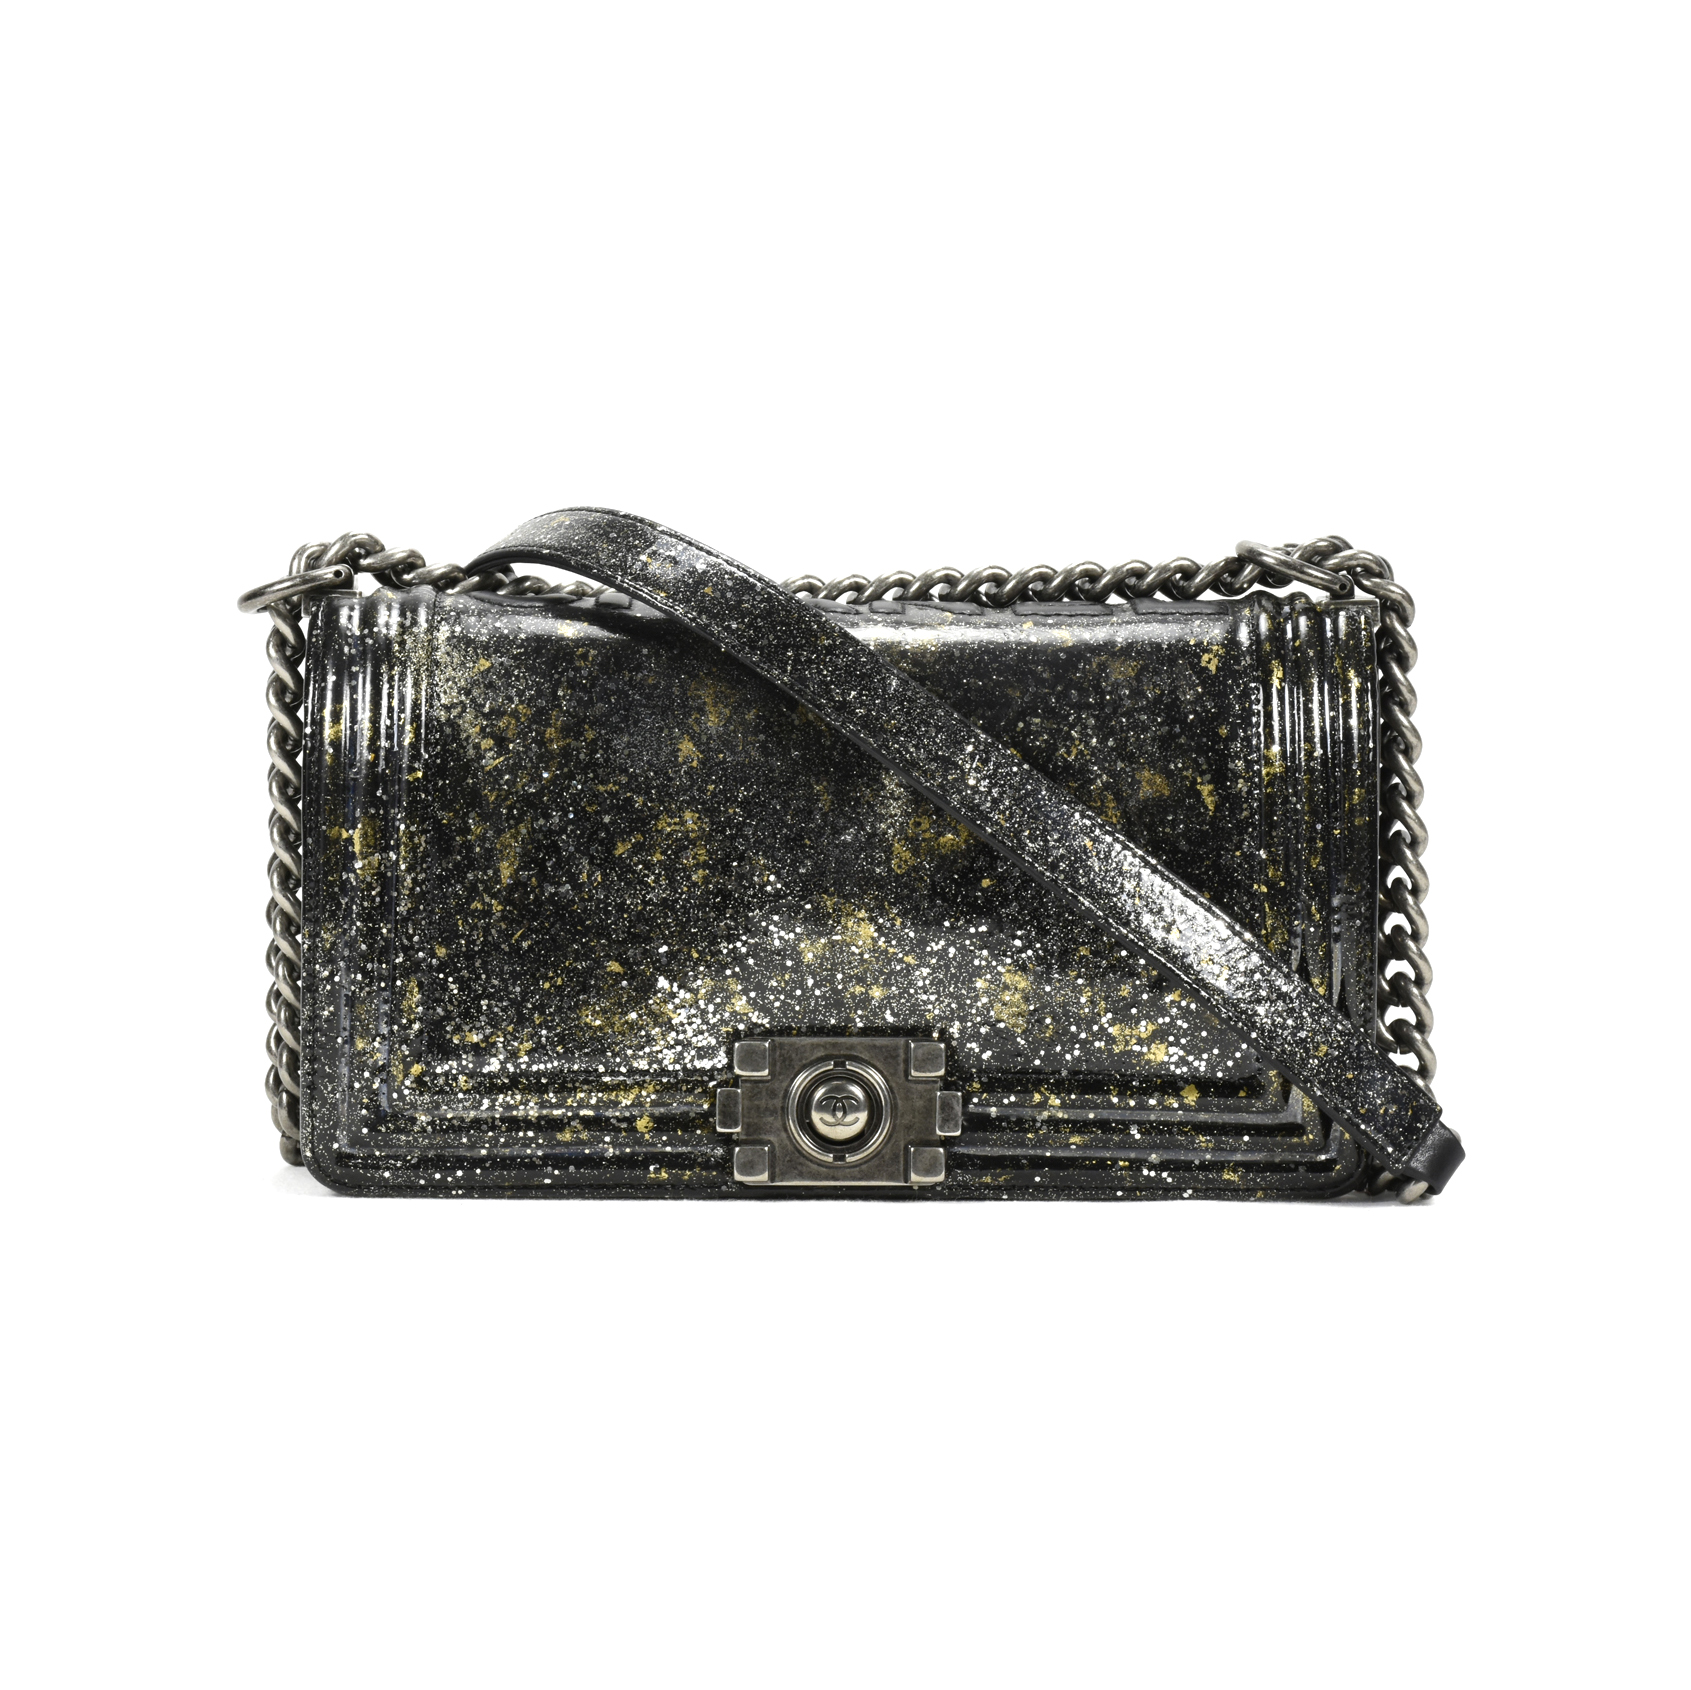 75e89e86fe37 Authentic Second Hand Chanel Old Medium Crystal Glitter Reverso Boy Bag  (PSS-200-00864) | THE FIFTH COLLECTION